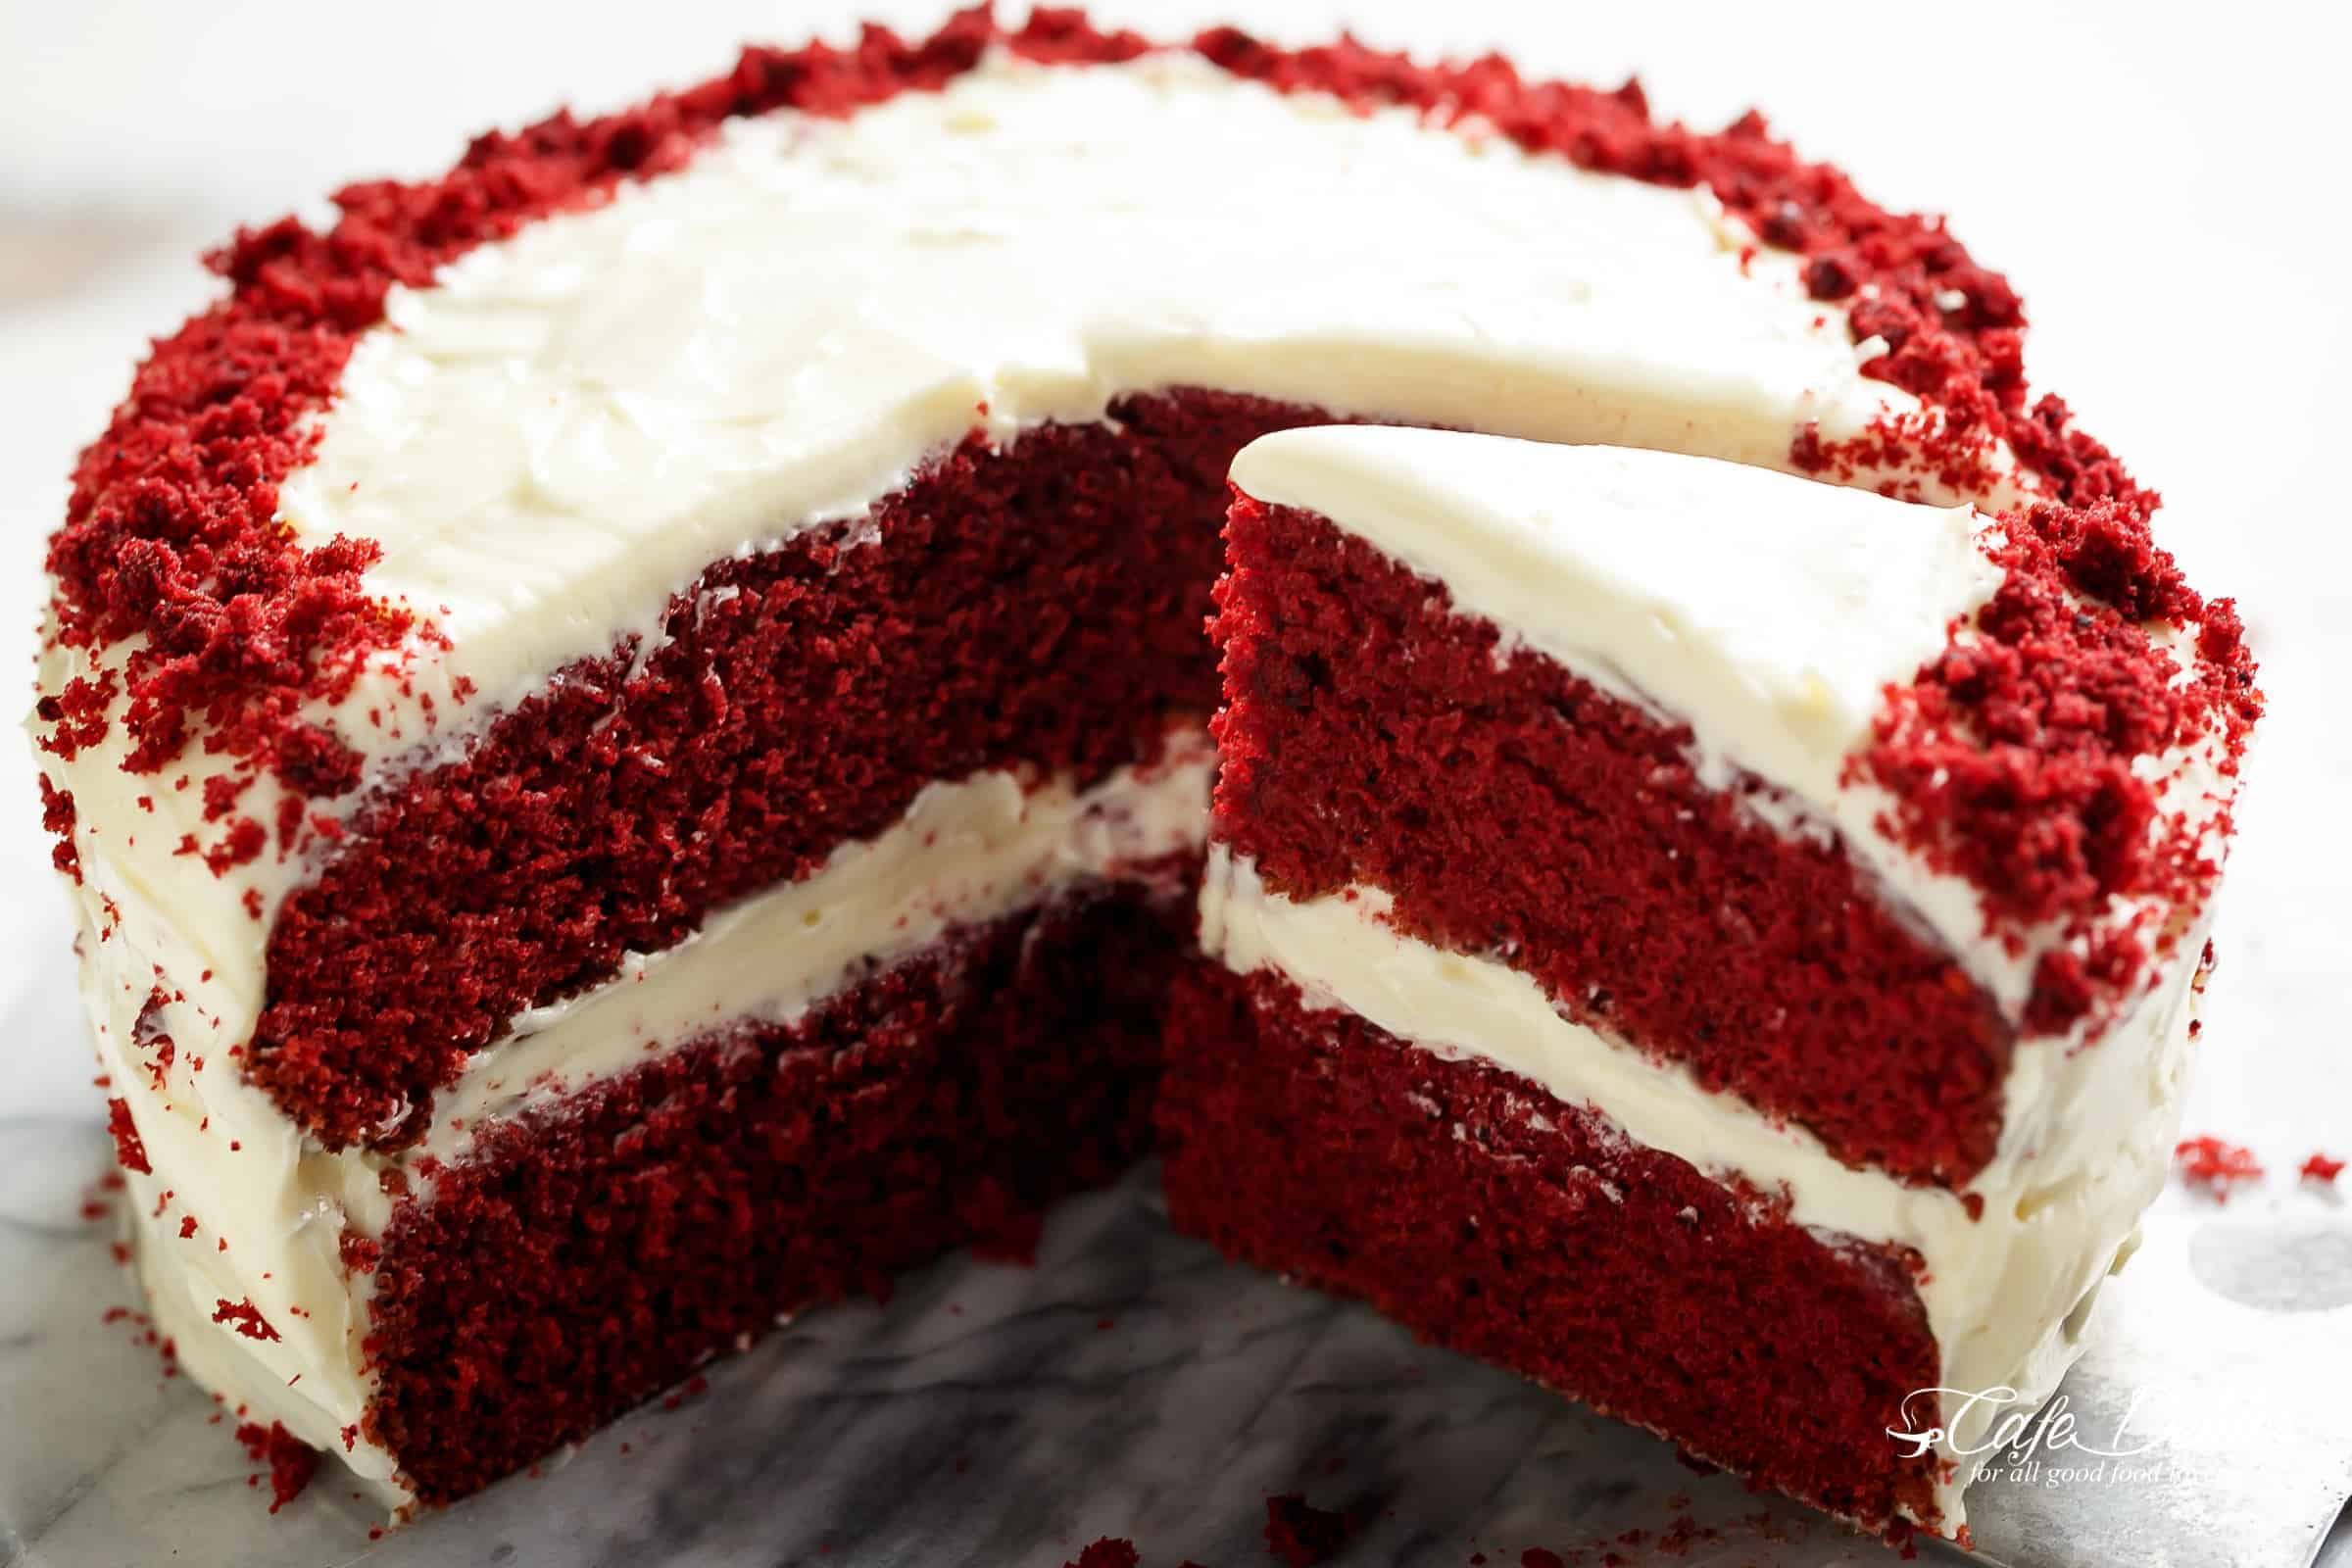 Best Red Velvet Cake - Cafe Delites